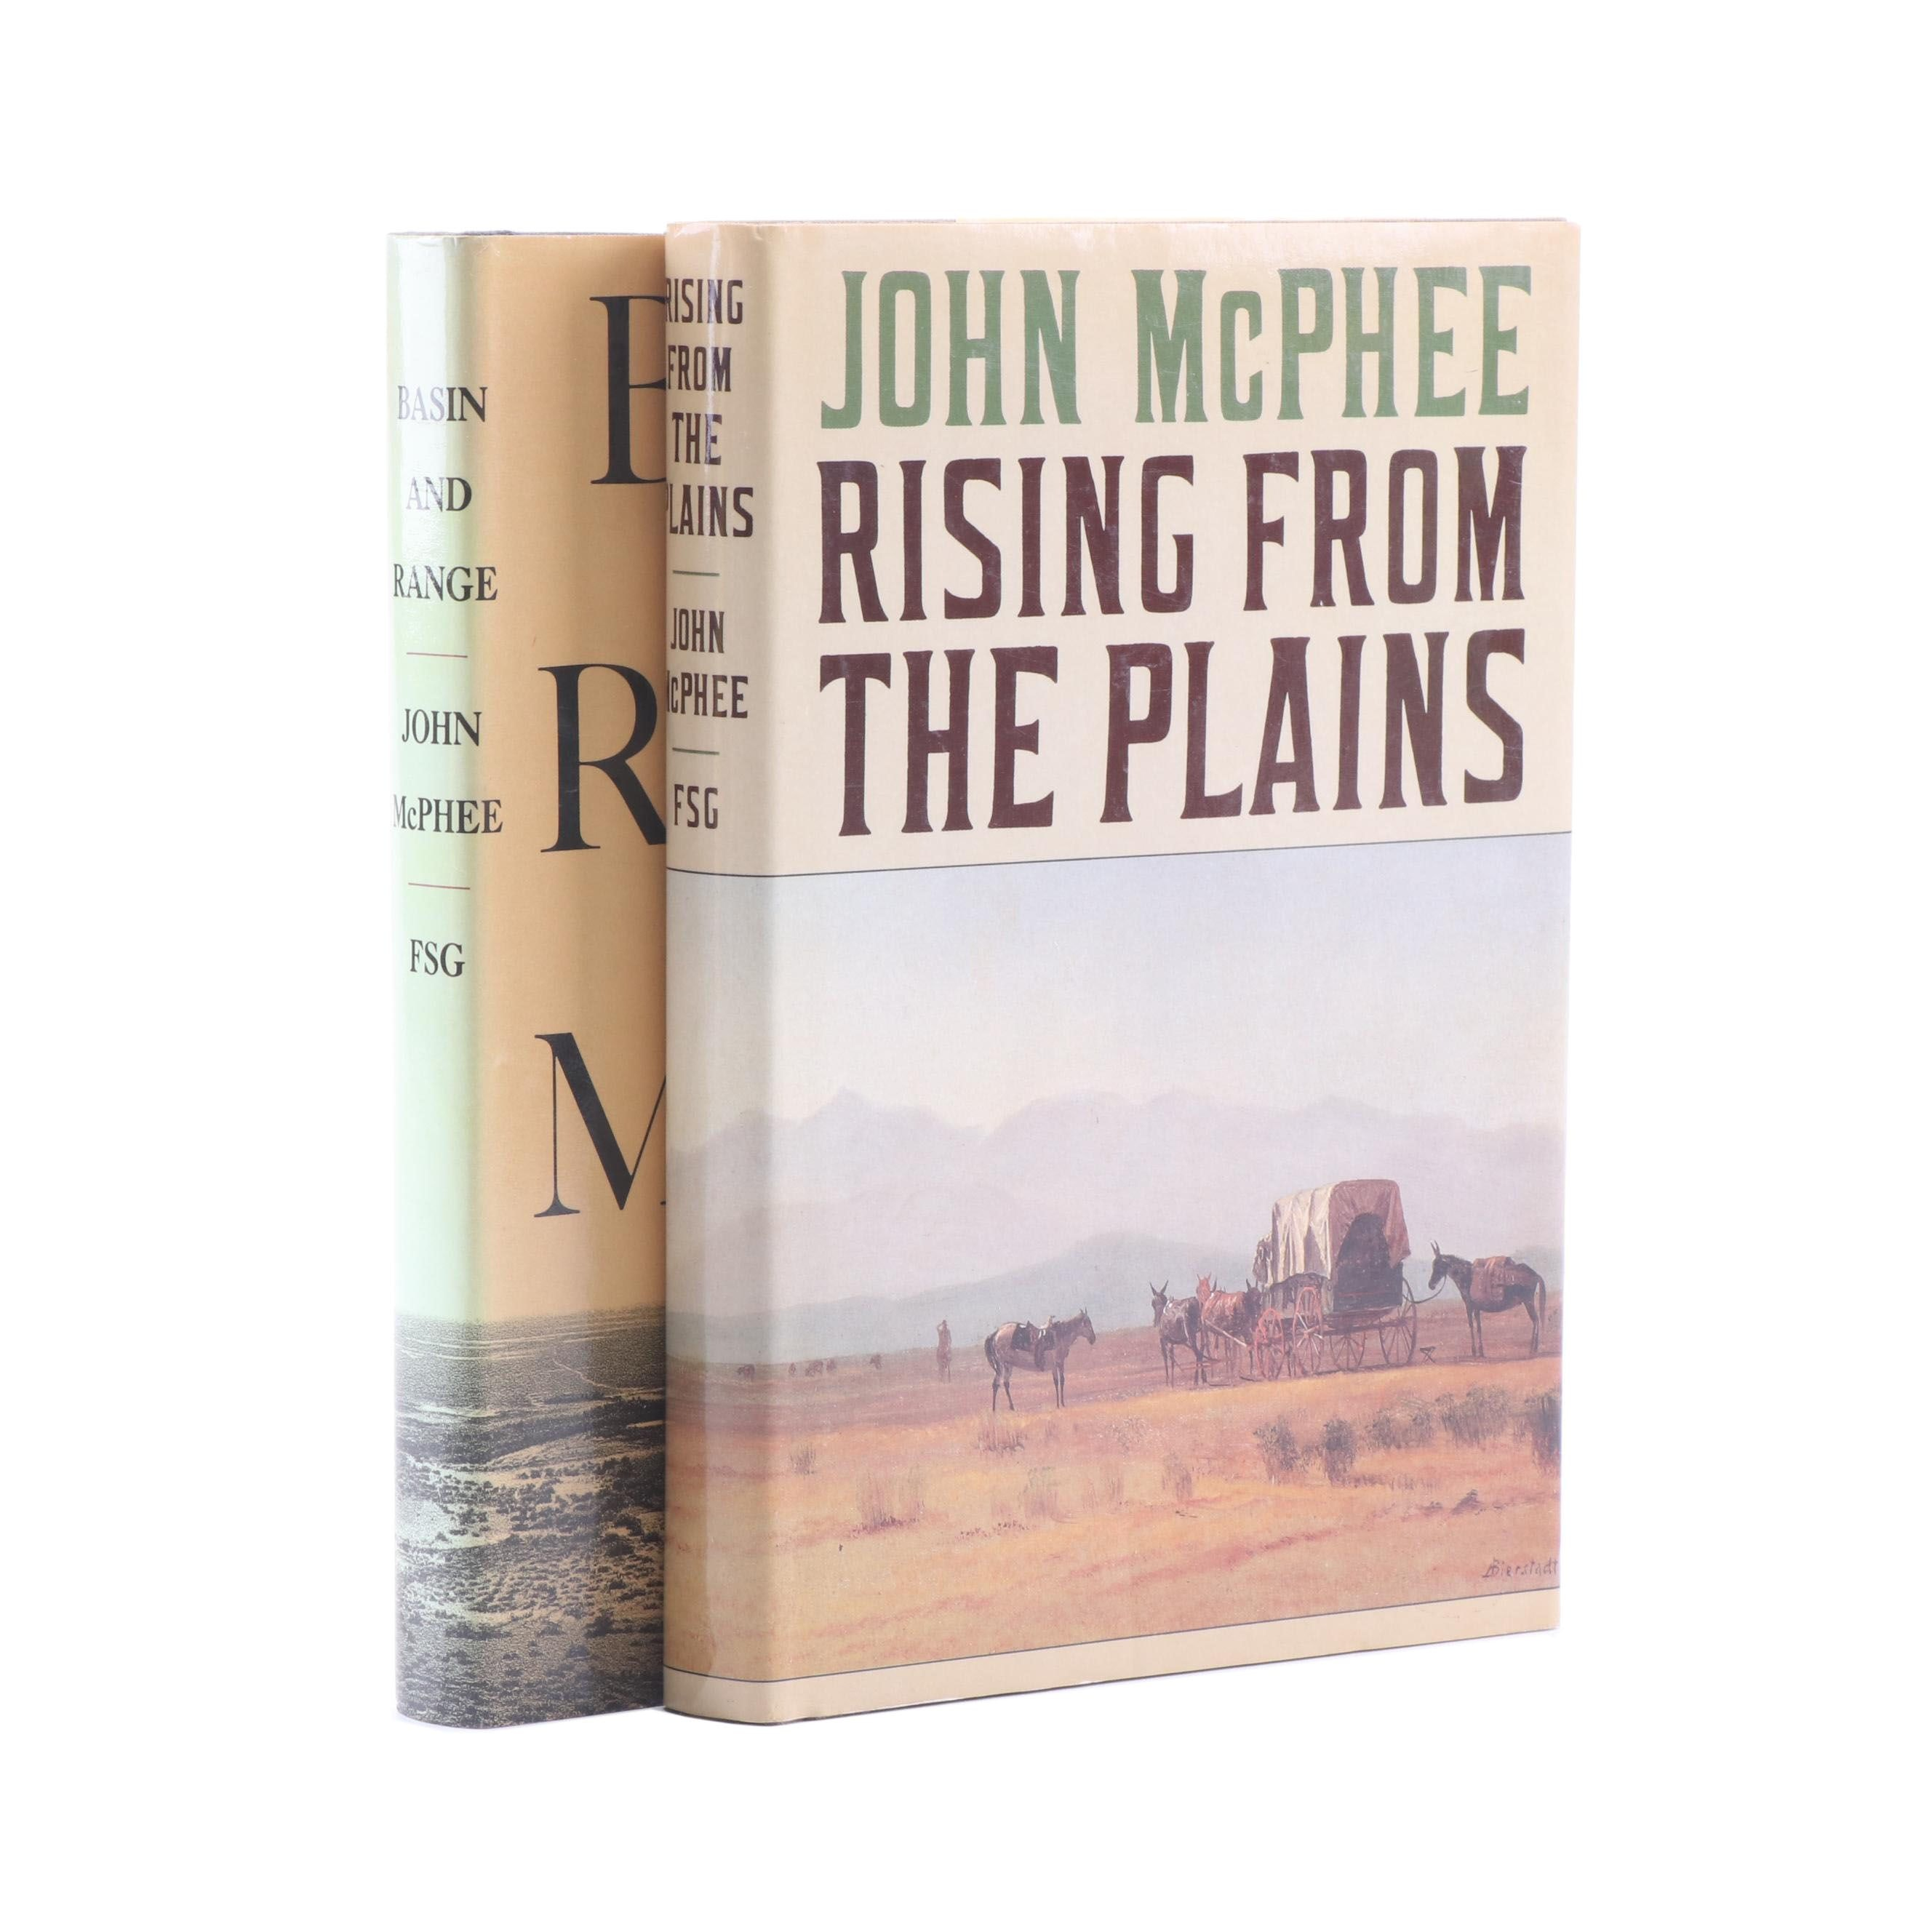 """""""Basin and Range"""" and """"Rising from the Plains"""" by John McPhee"""